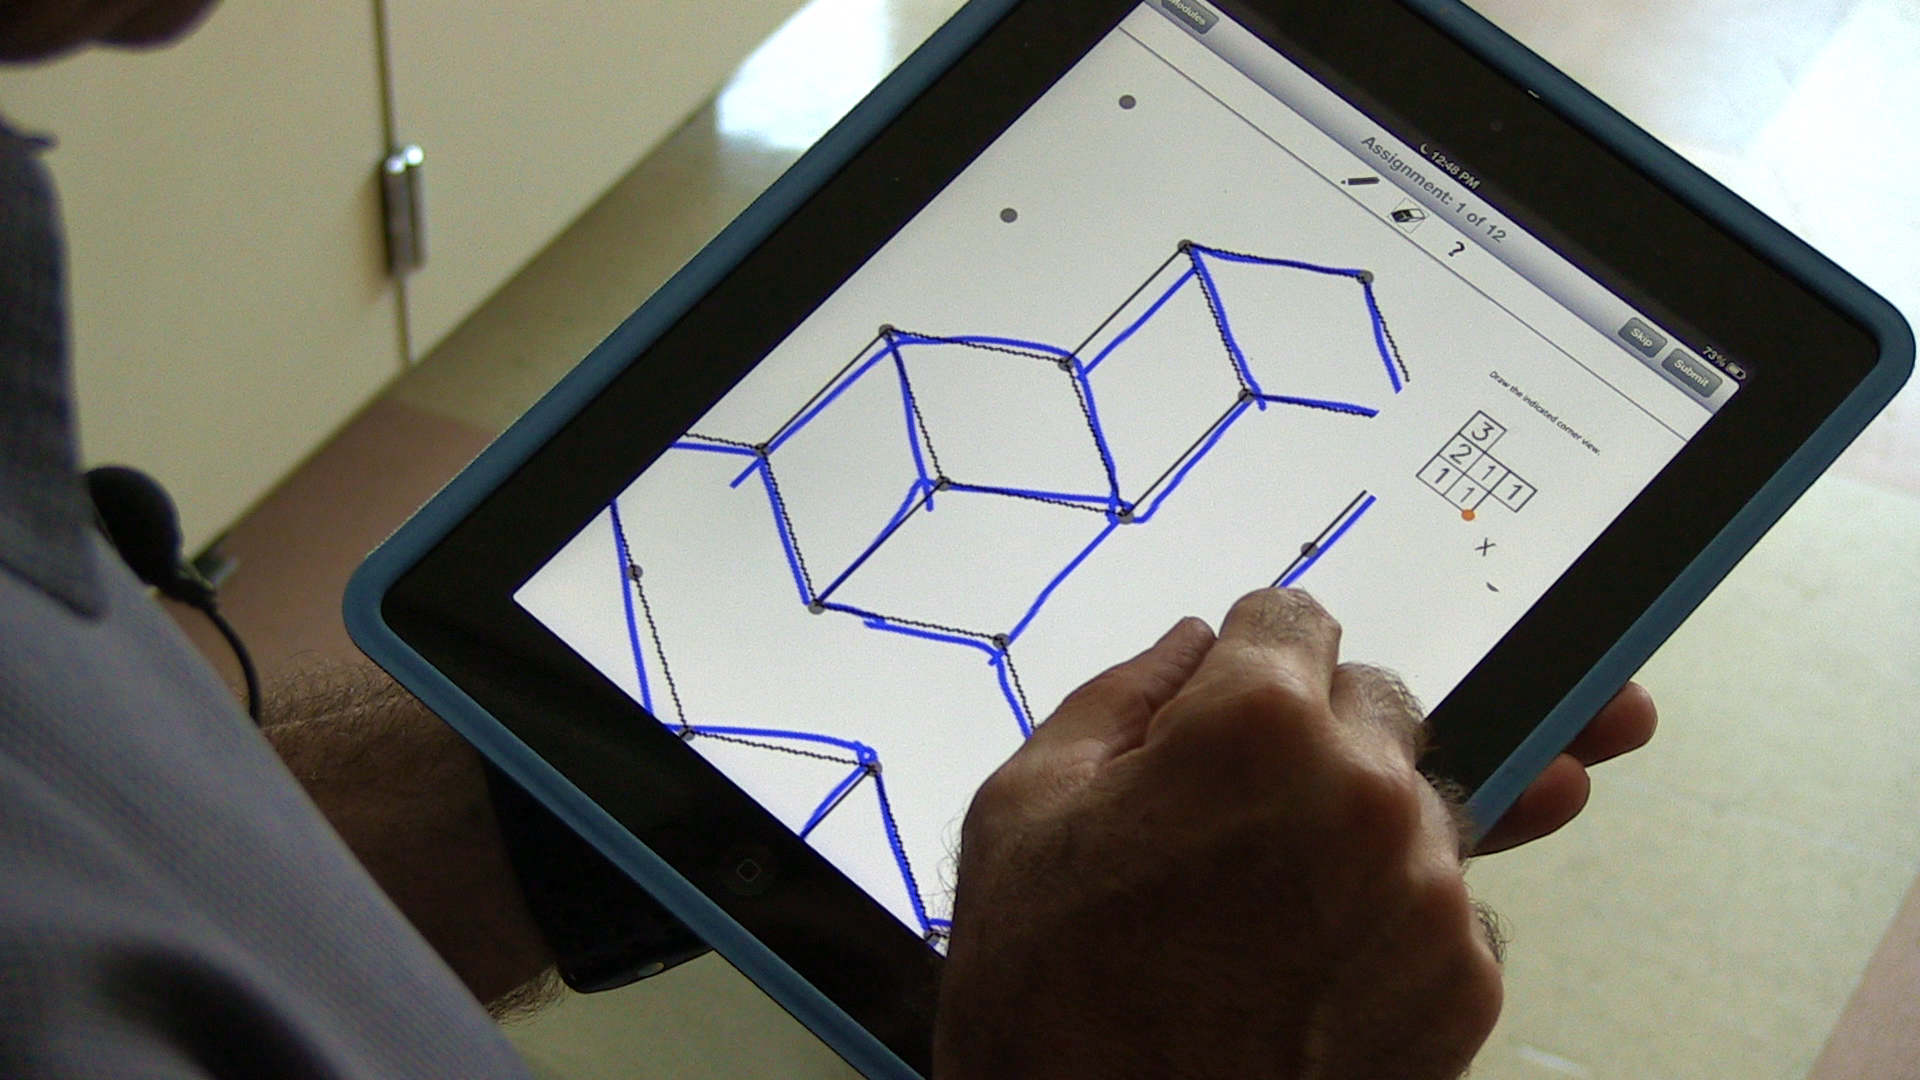 ipad app teaches students key skill for success in math